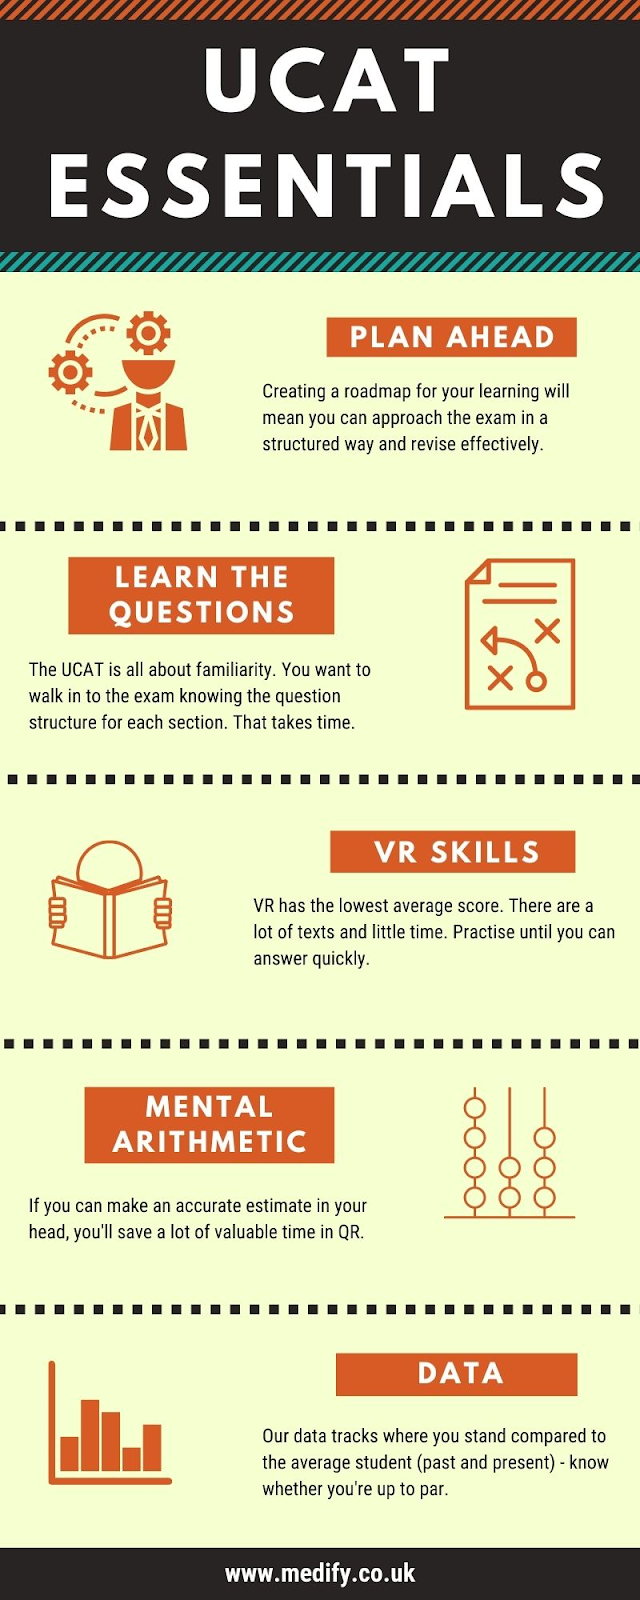 UCAT test essentials infographic: Plan ahead, Learn the questions, VR skills, mental arithmetic, and data (track your progress with Medify)